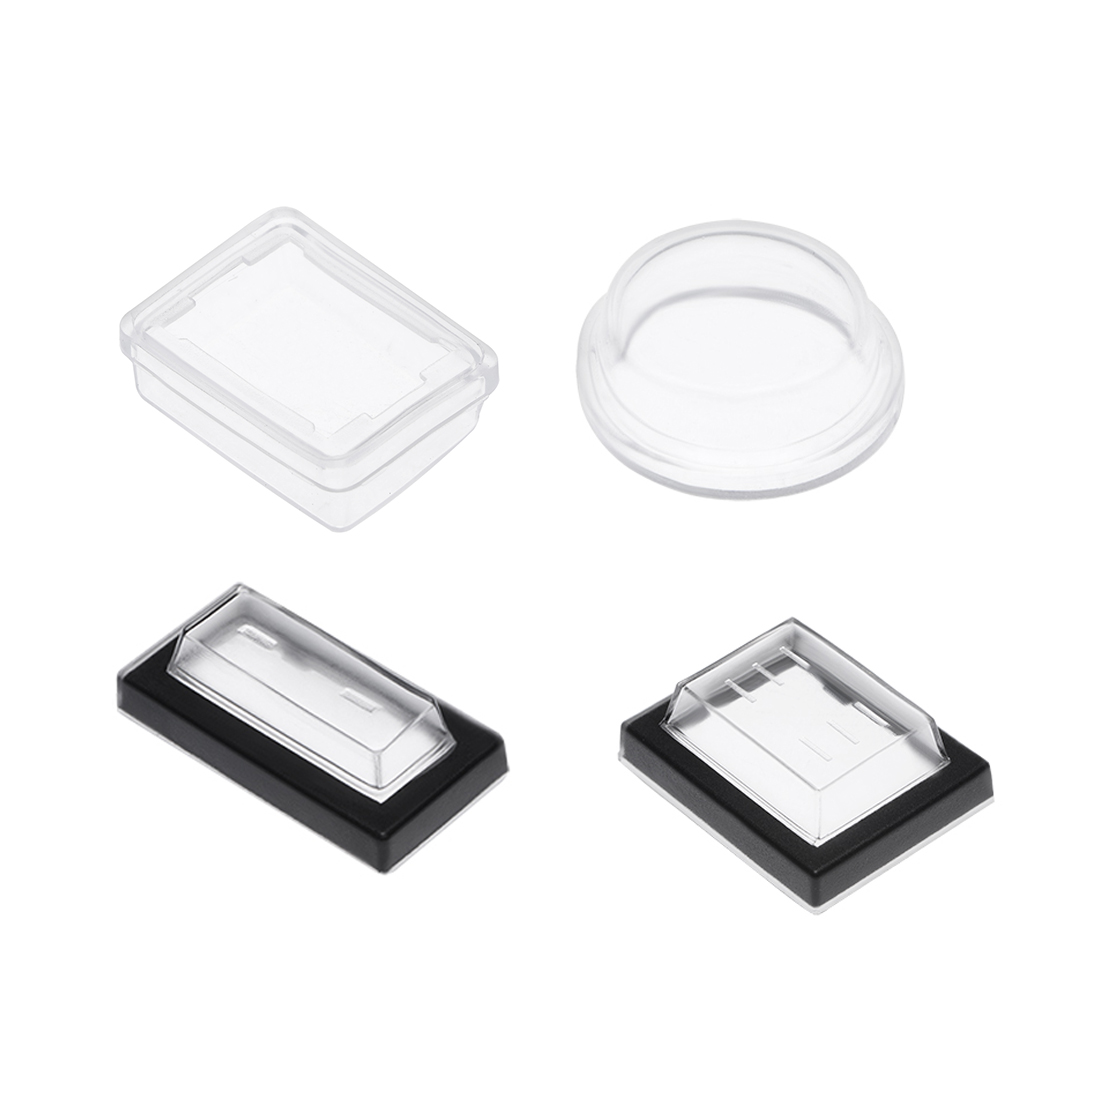 Uxcell 10/20pcs Switch Covers Waterproof Case Rectangle/Round Caps Protector Clear Silicone For Boat Rocker Switch